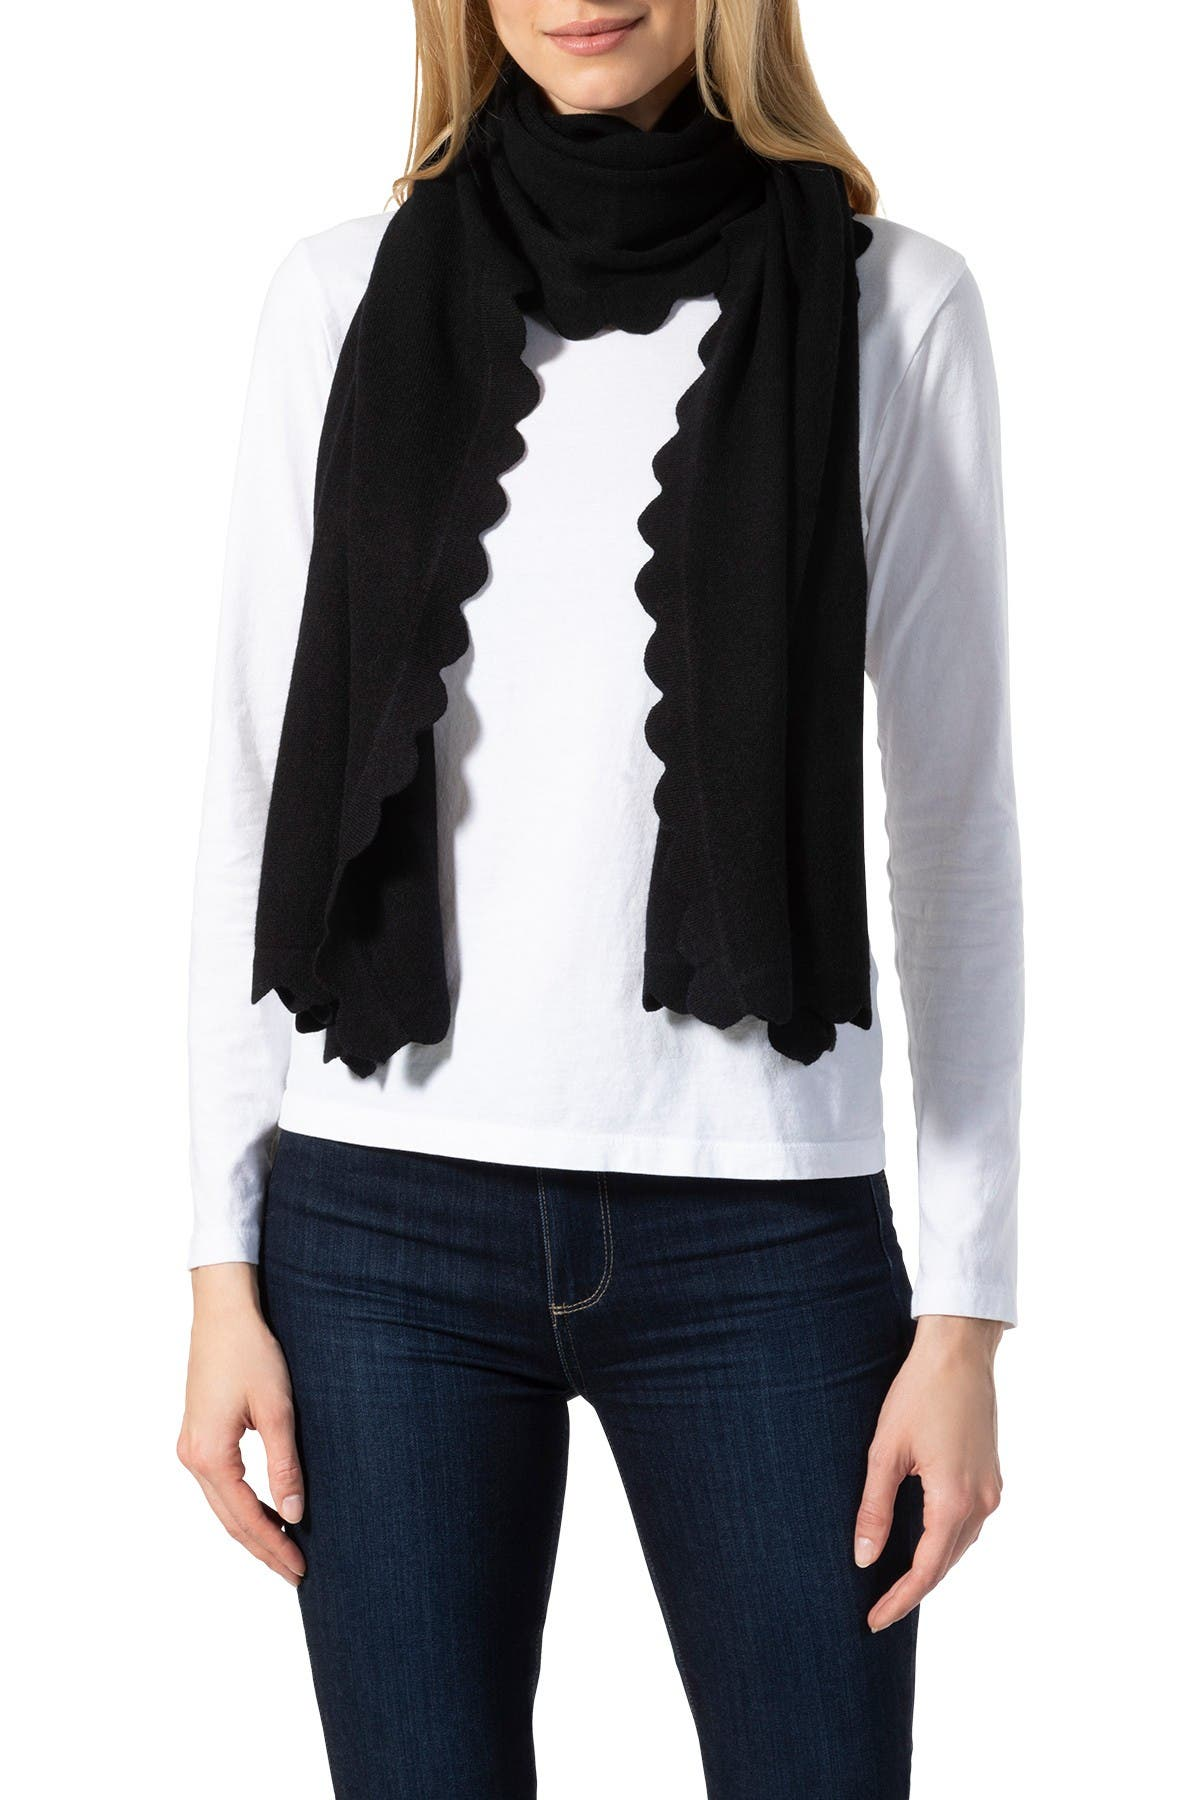 Image of AMICALE Cashmere Scalloped Edge Knit Scarf